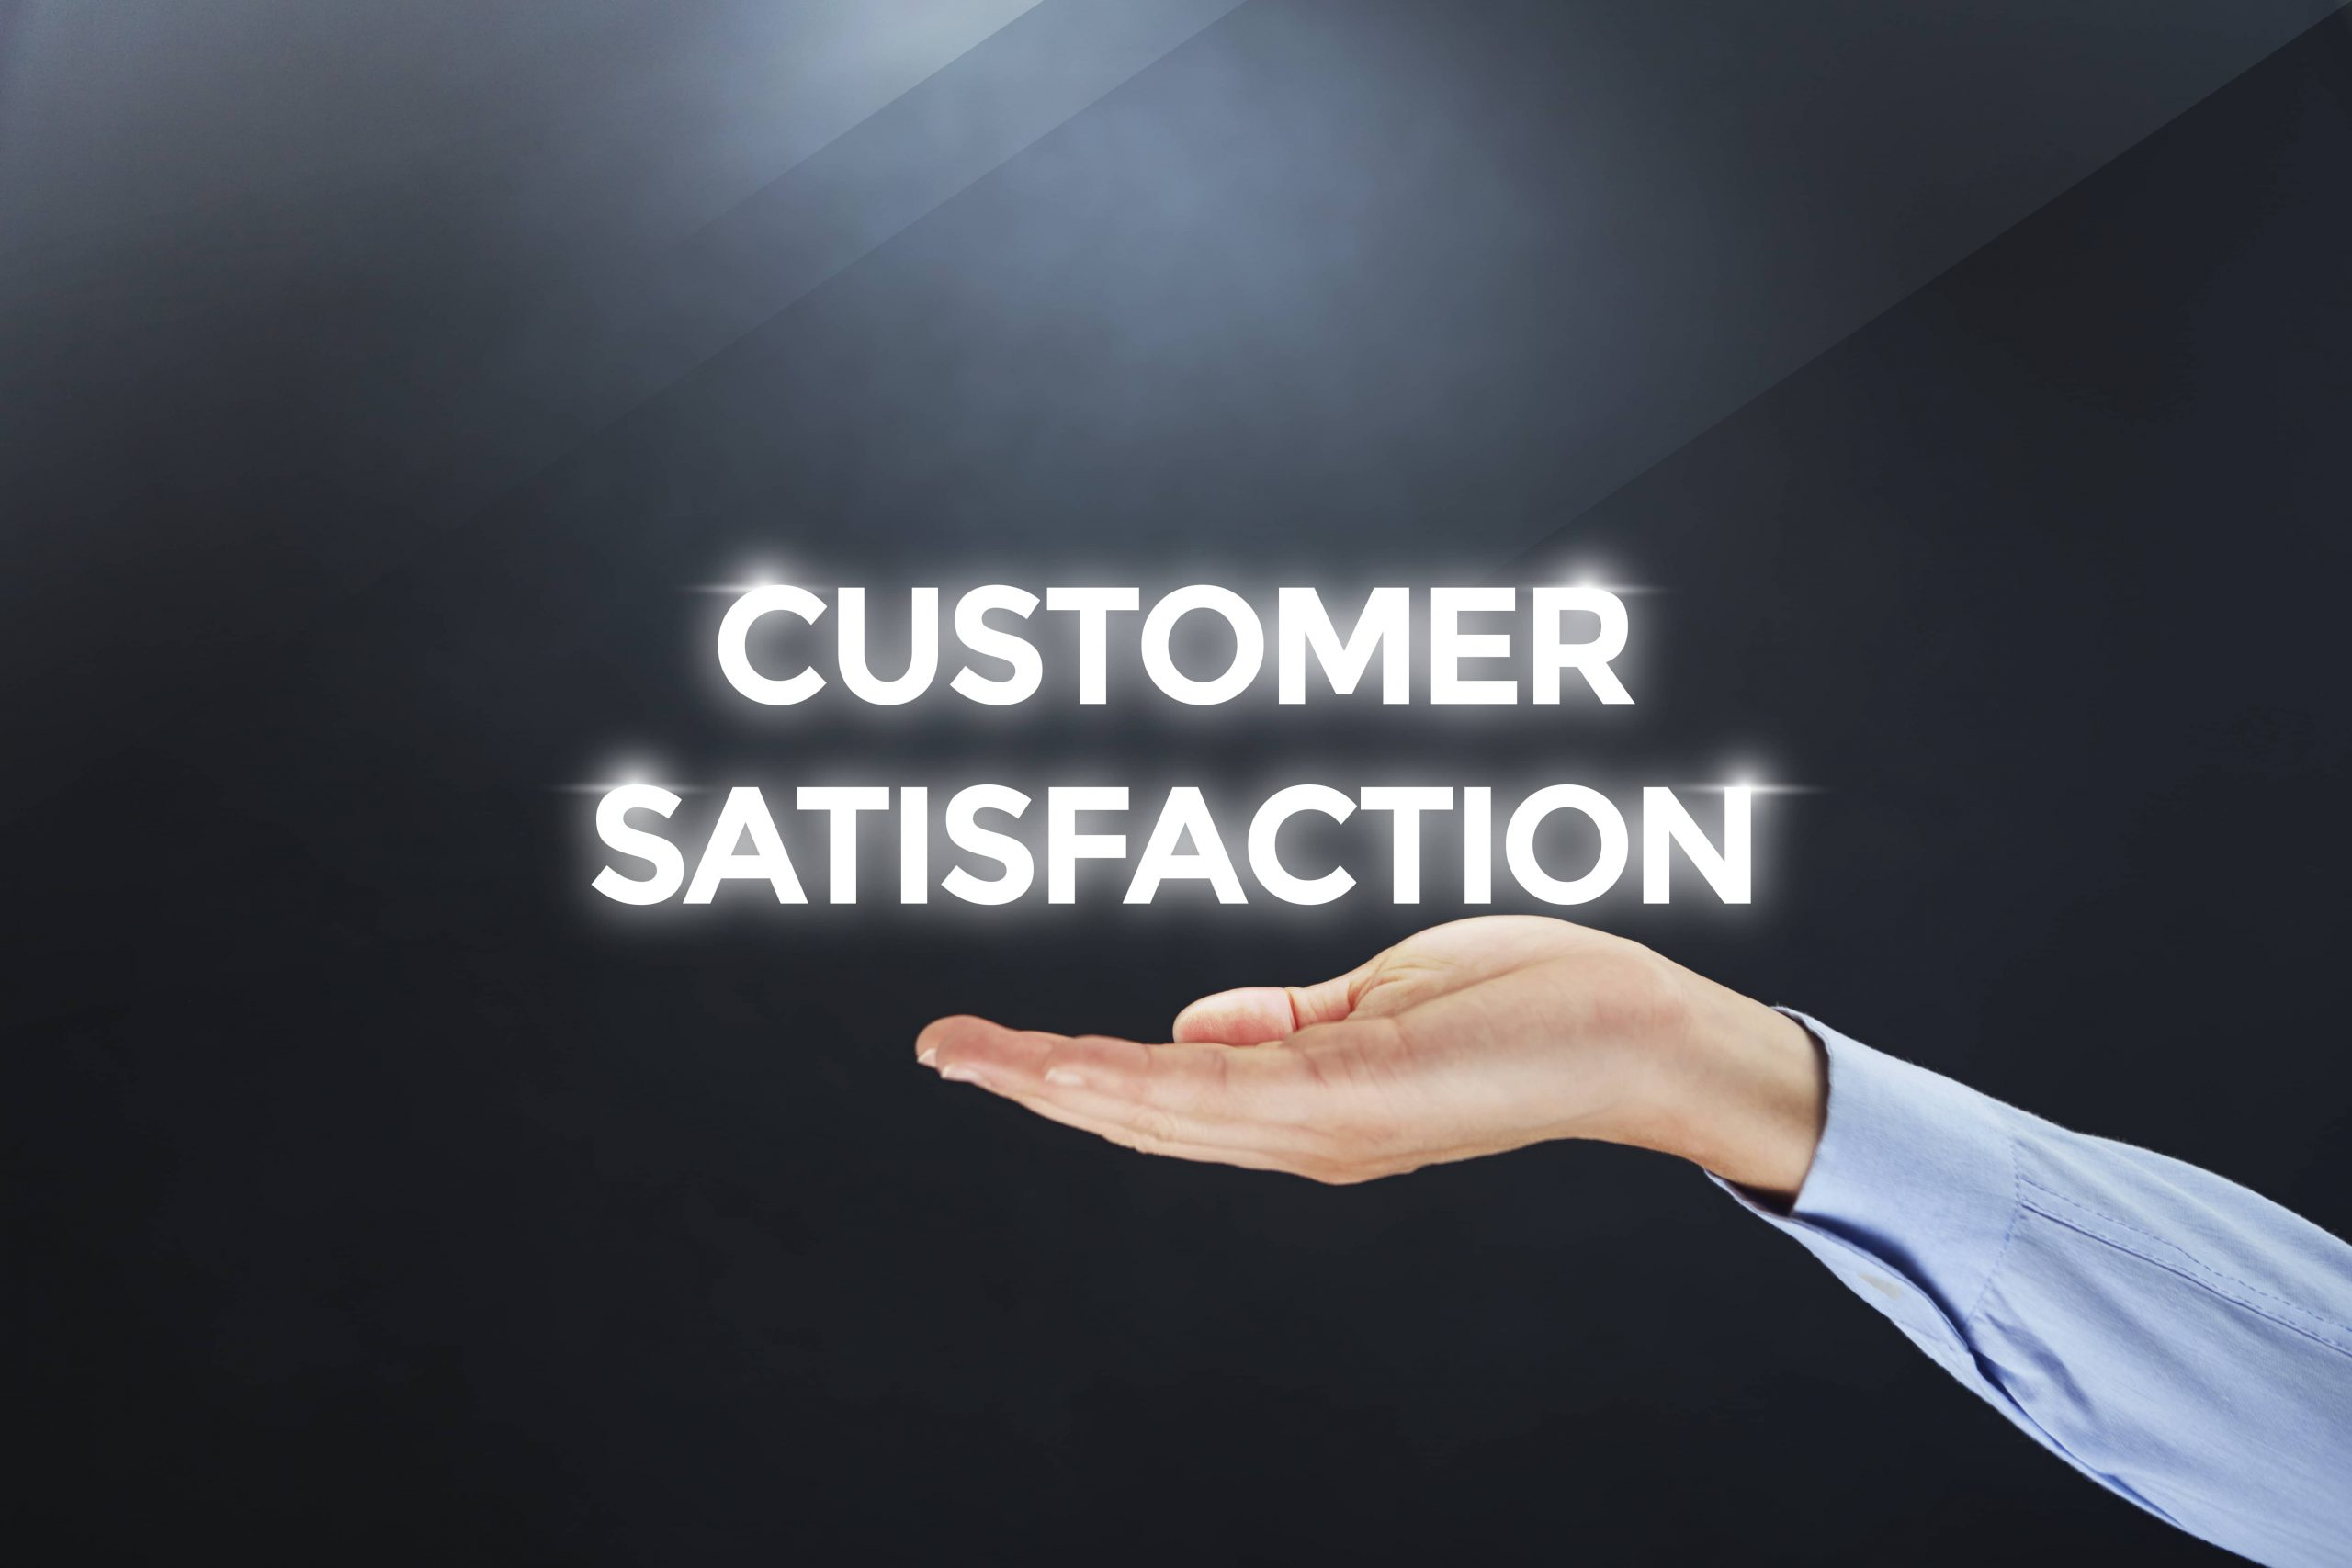 hand is out holding the words customer satisfaction in bright lights